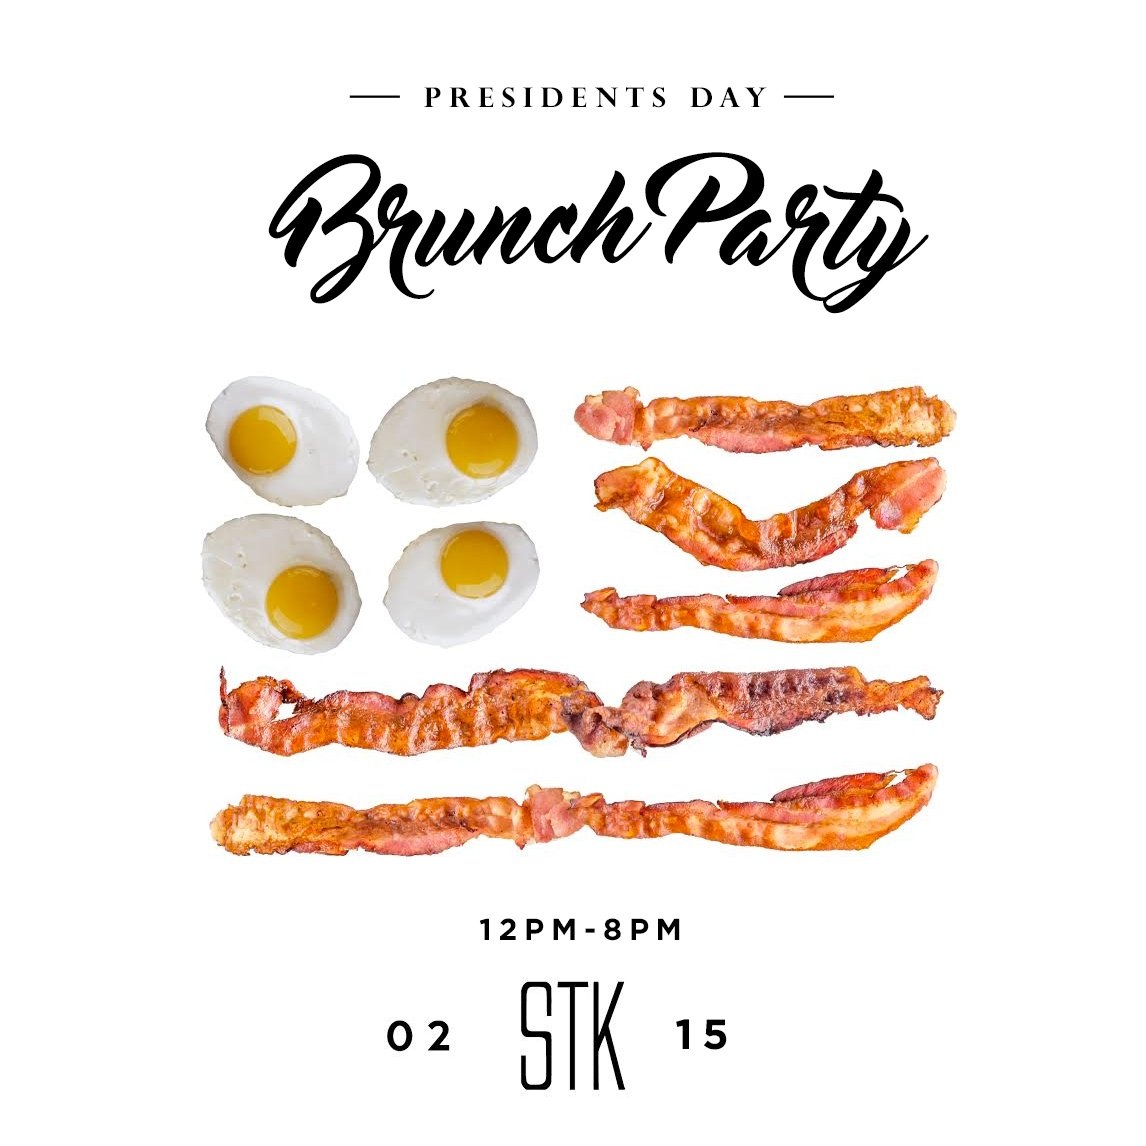 2/15 The Presidents Day Party at STK 12-8pm |  Food, Music & Brunch | RSVP & Table RSVP: https://t.co/7D0UrLkmSV https://t.co/Z3lTUQ7HNd